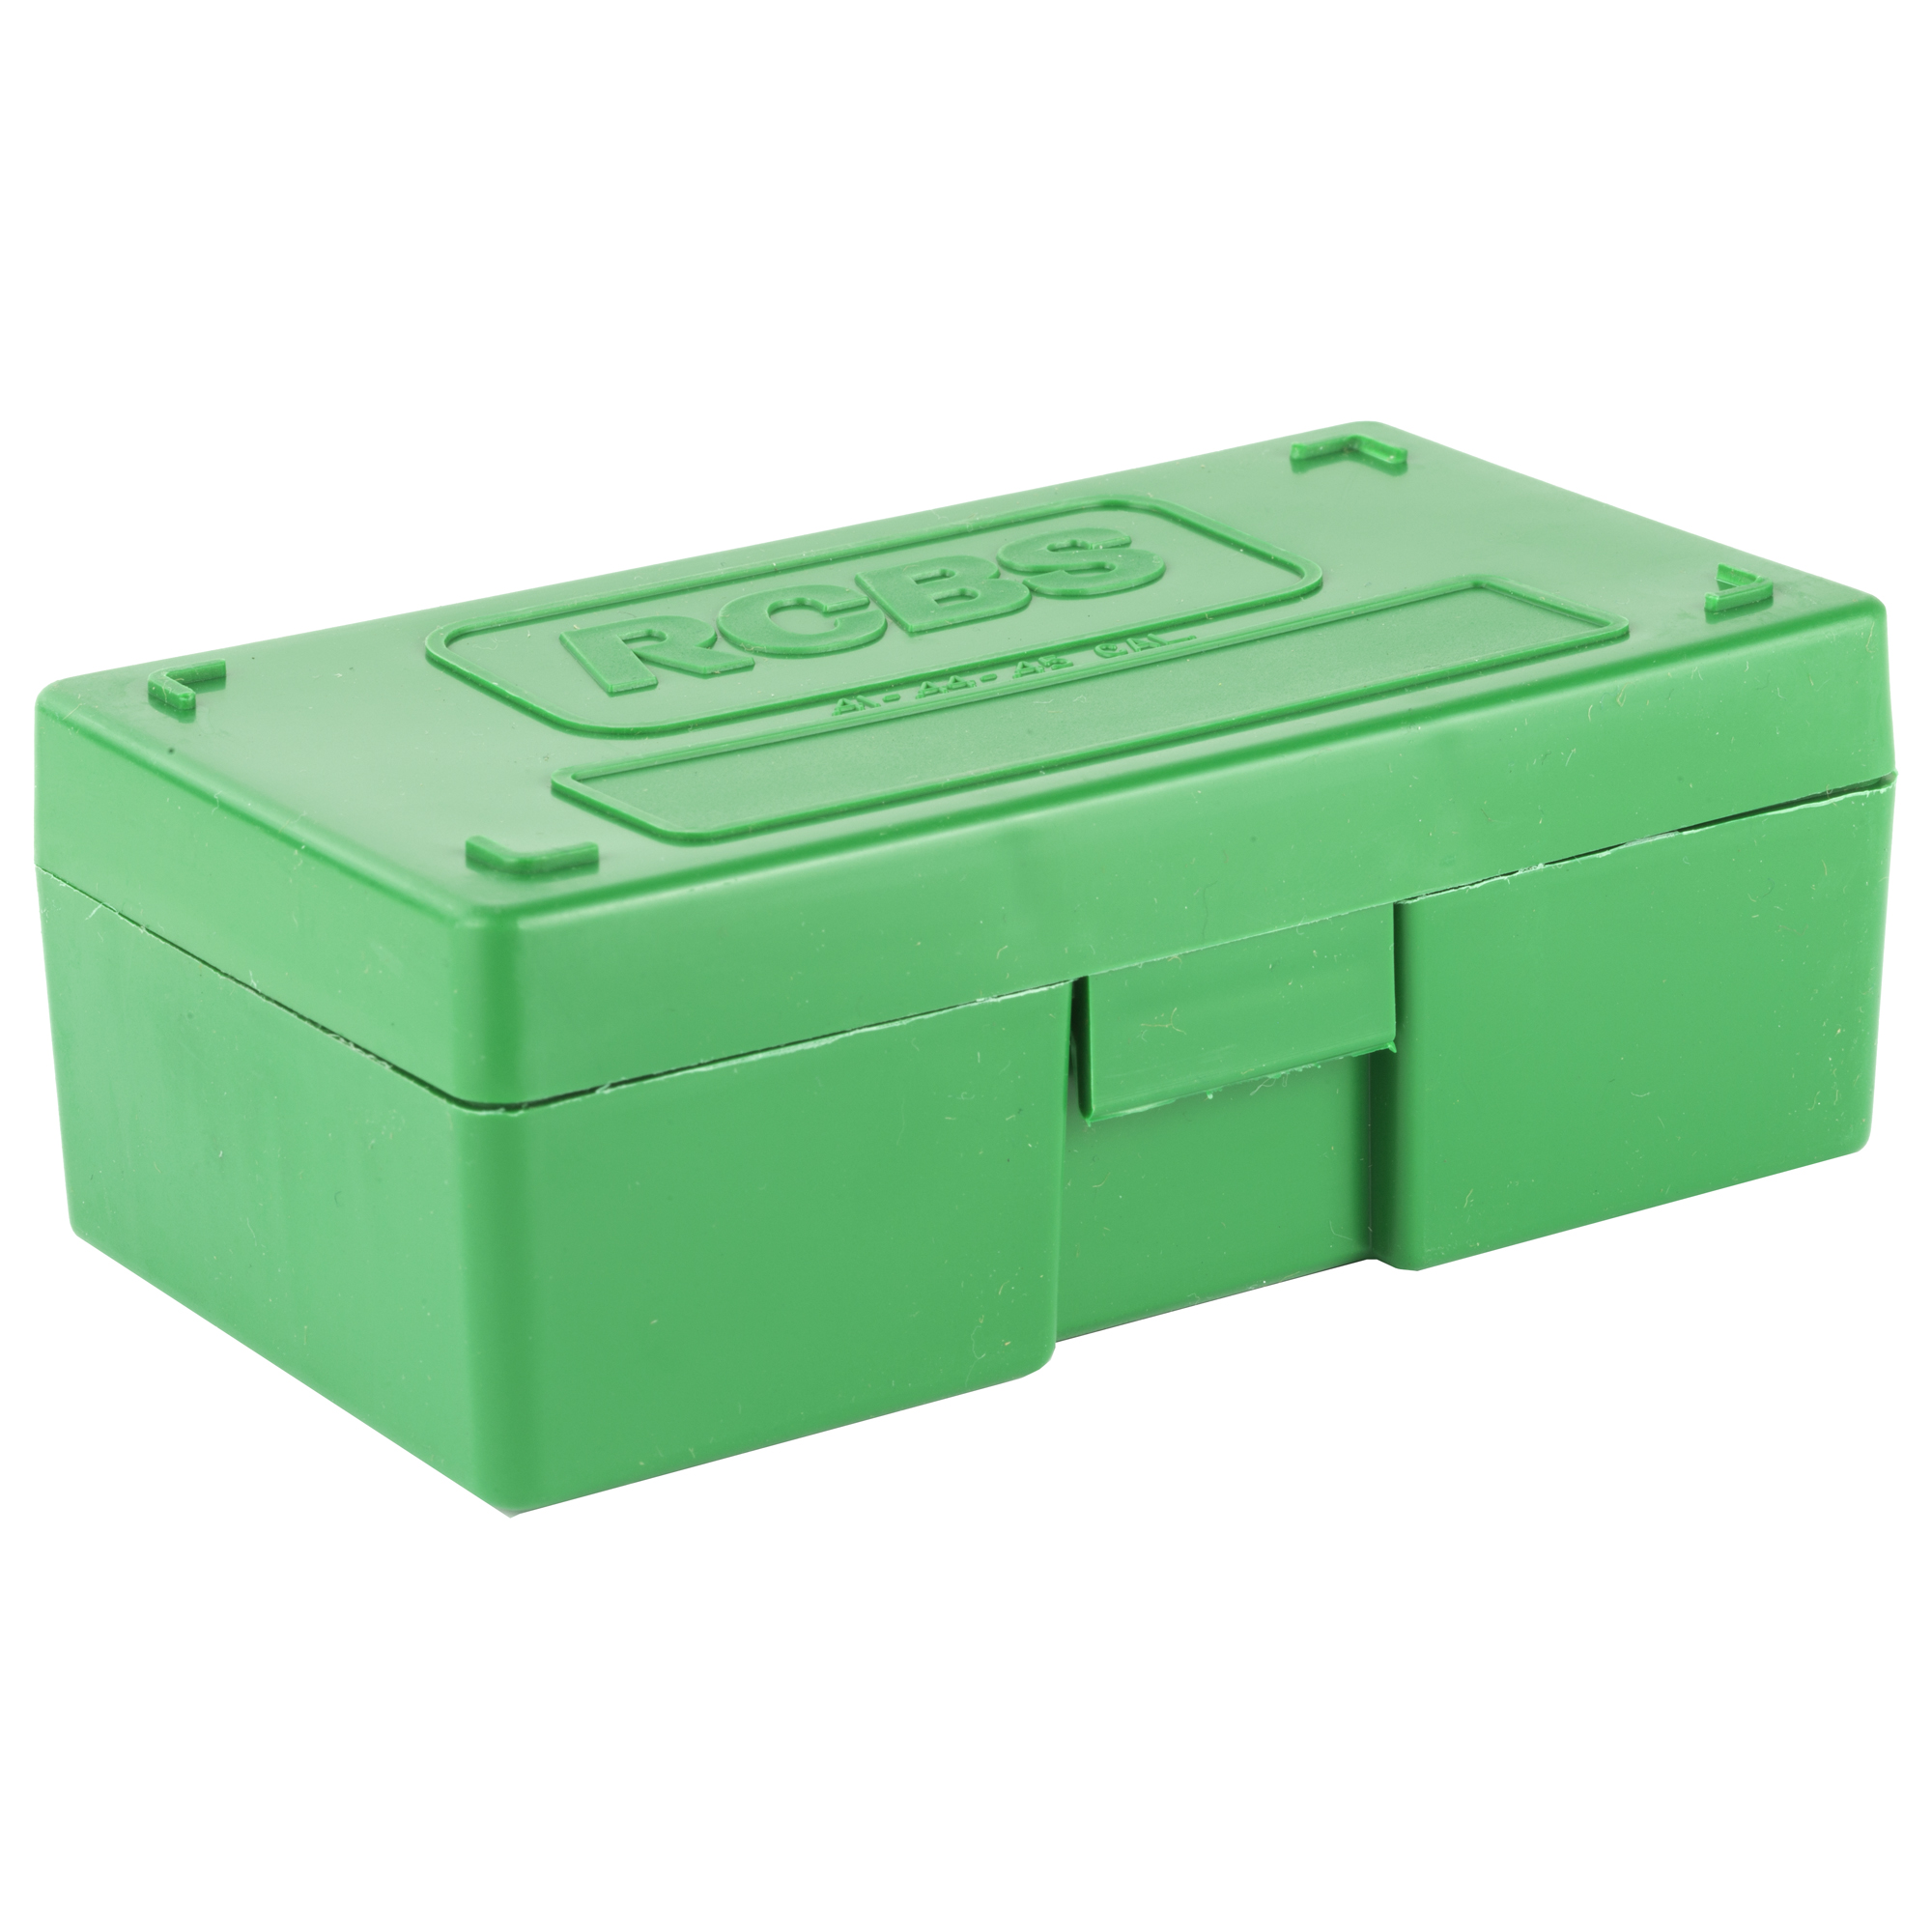 Rcbs Ammo Box Large Pistol Green